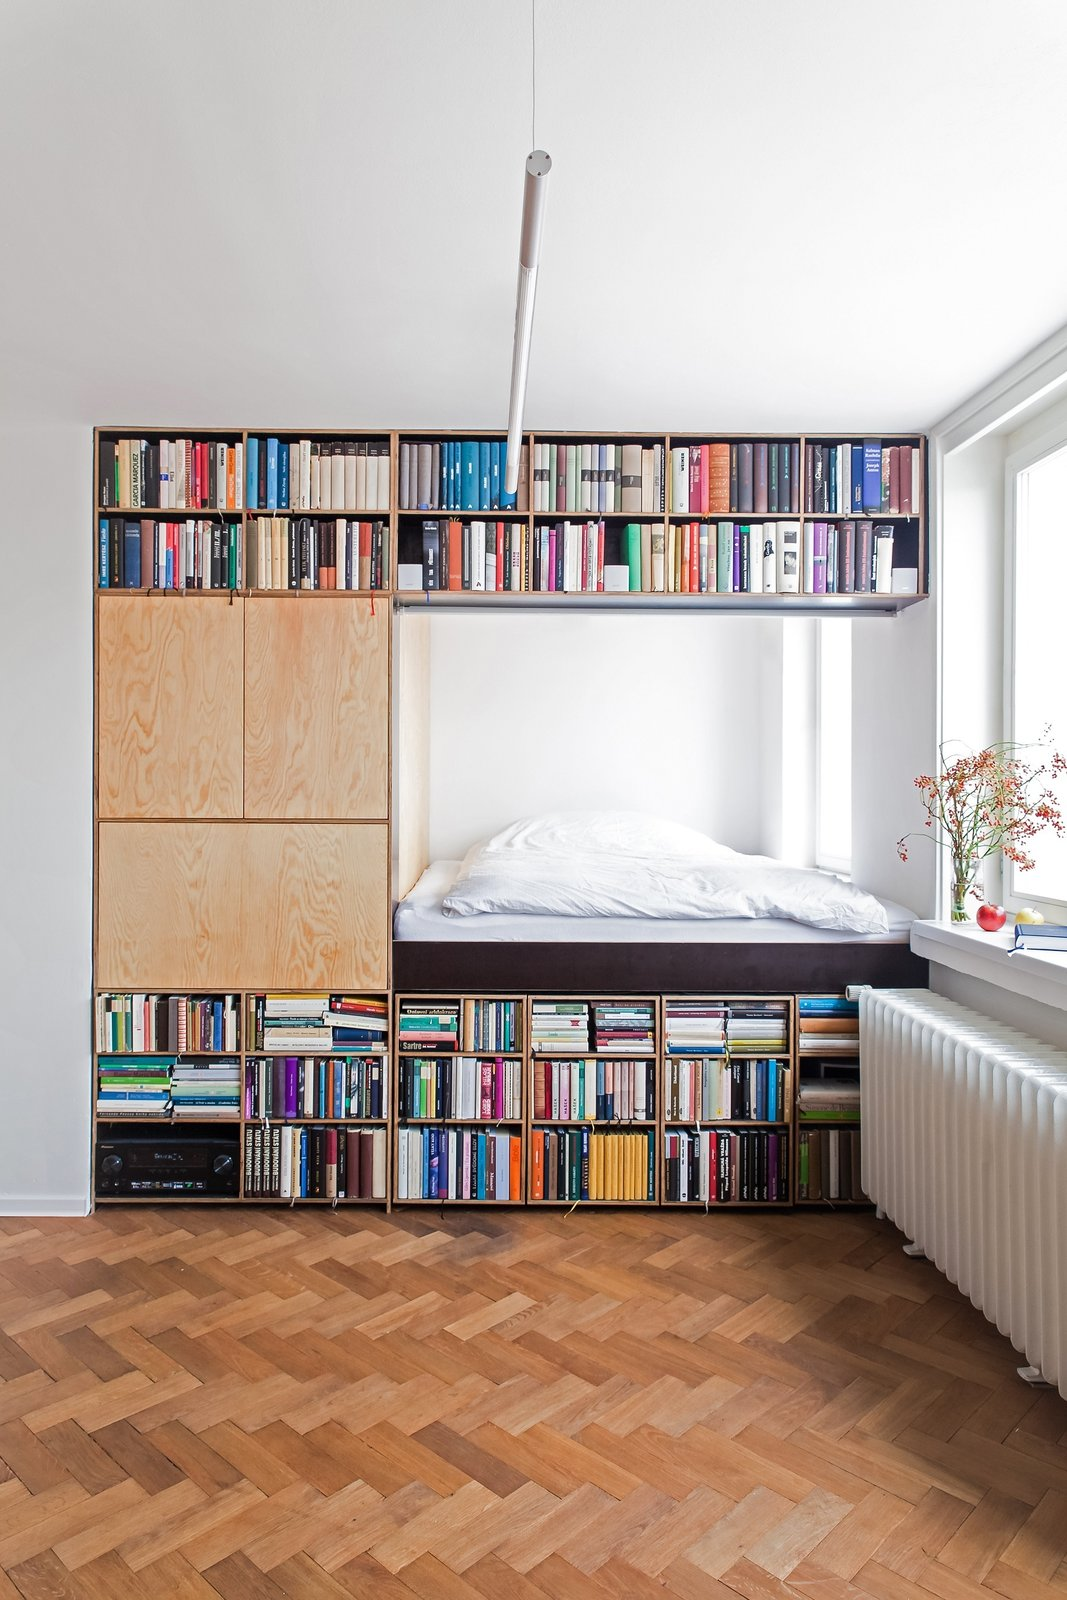 BY Architects RK 13-Apartment for a Writer p 84  Photo 10 of 15 in Gestalten's New Book Shows How to Transform Small Spaces Into Design Marvels